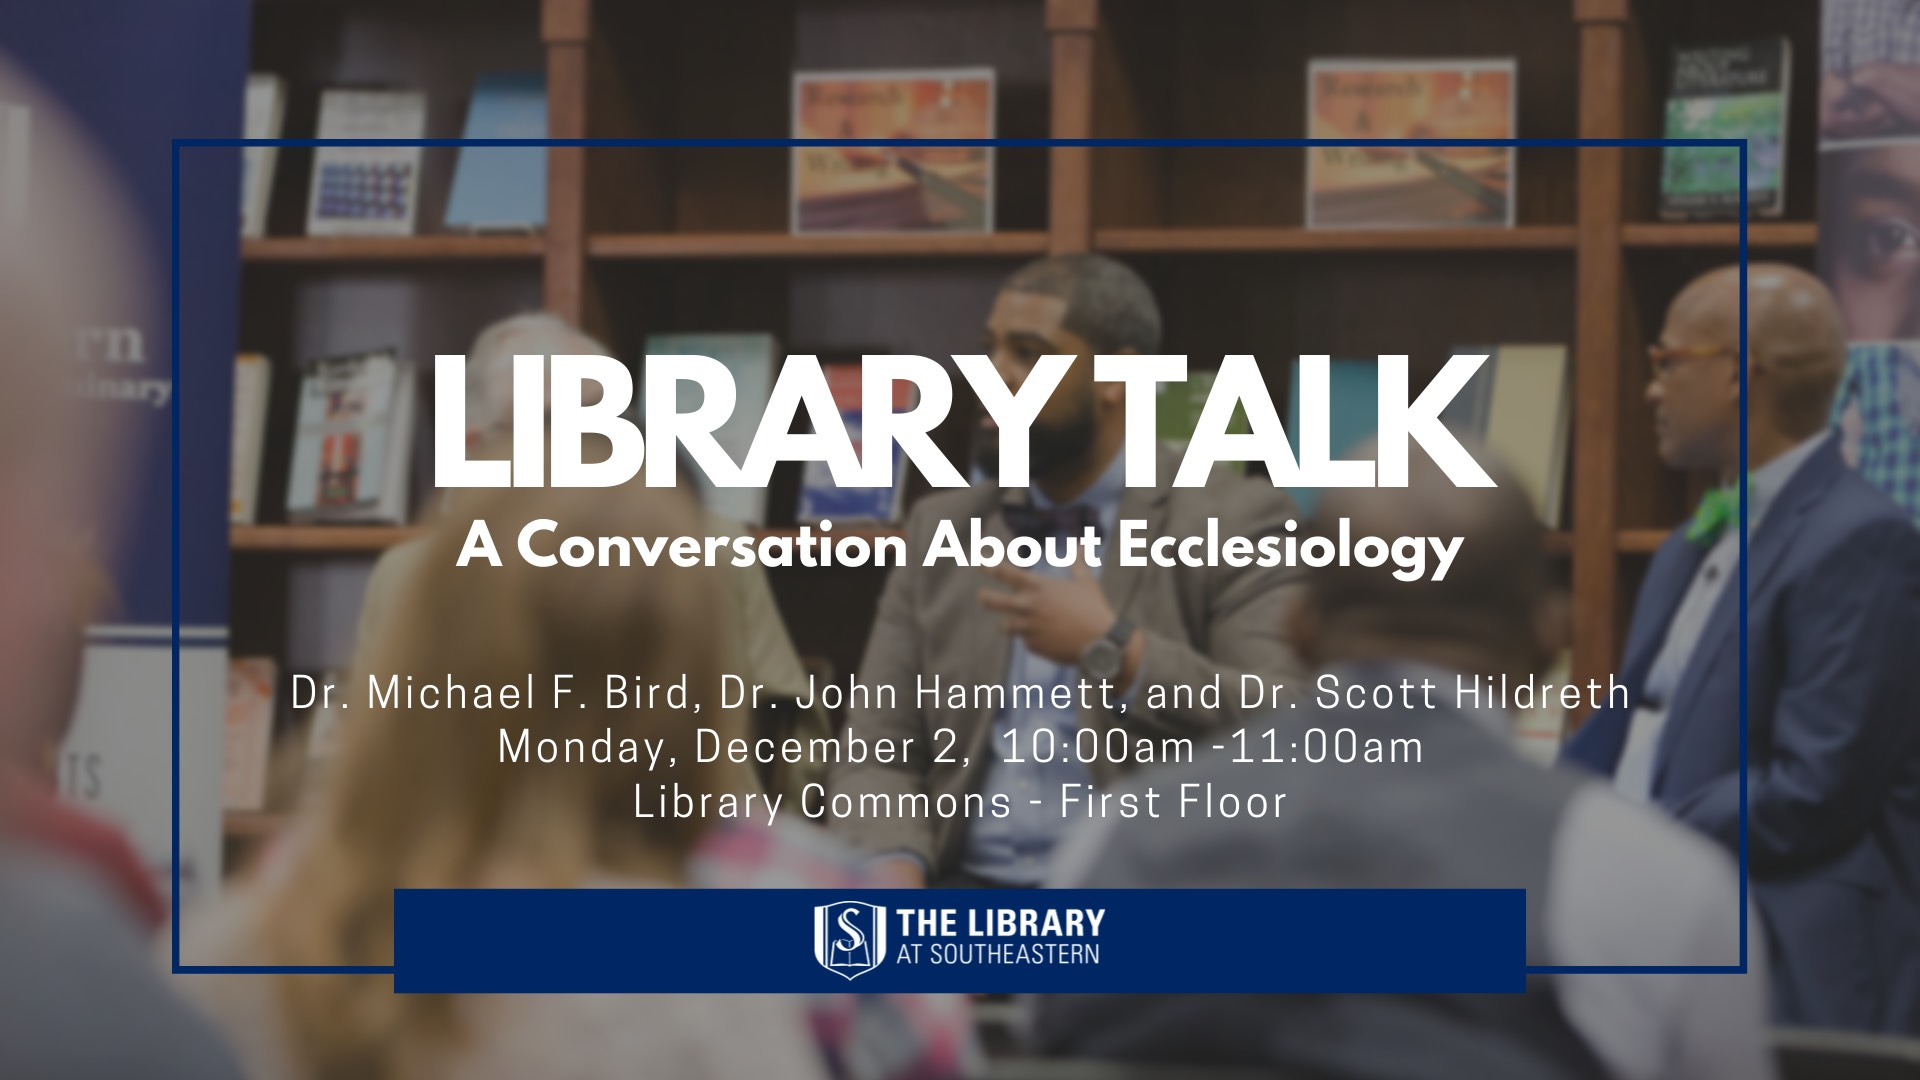 Library Talk: A Discussion About Ecclesiology